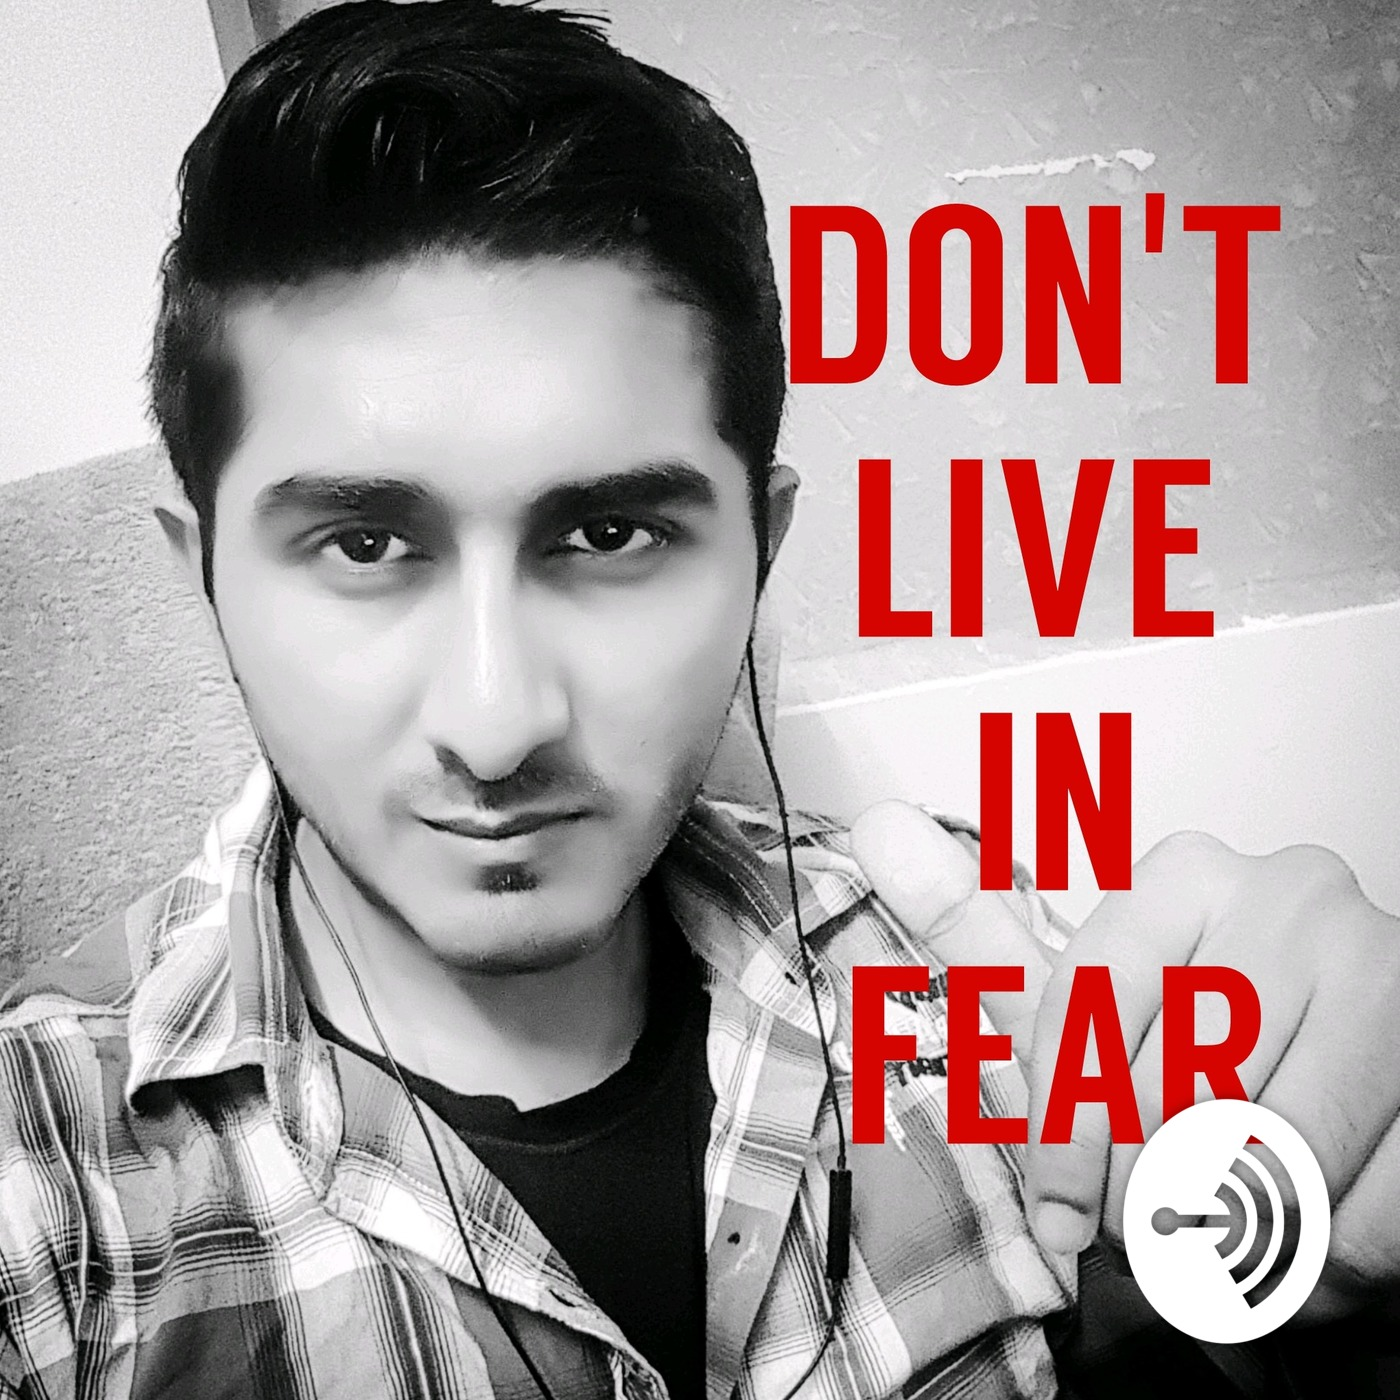 🔥Don't Live in FEAR🔥